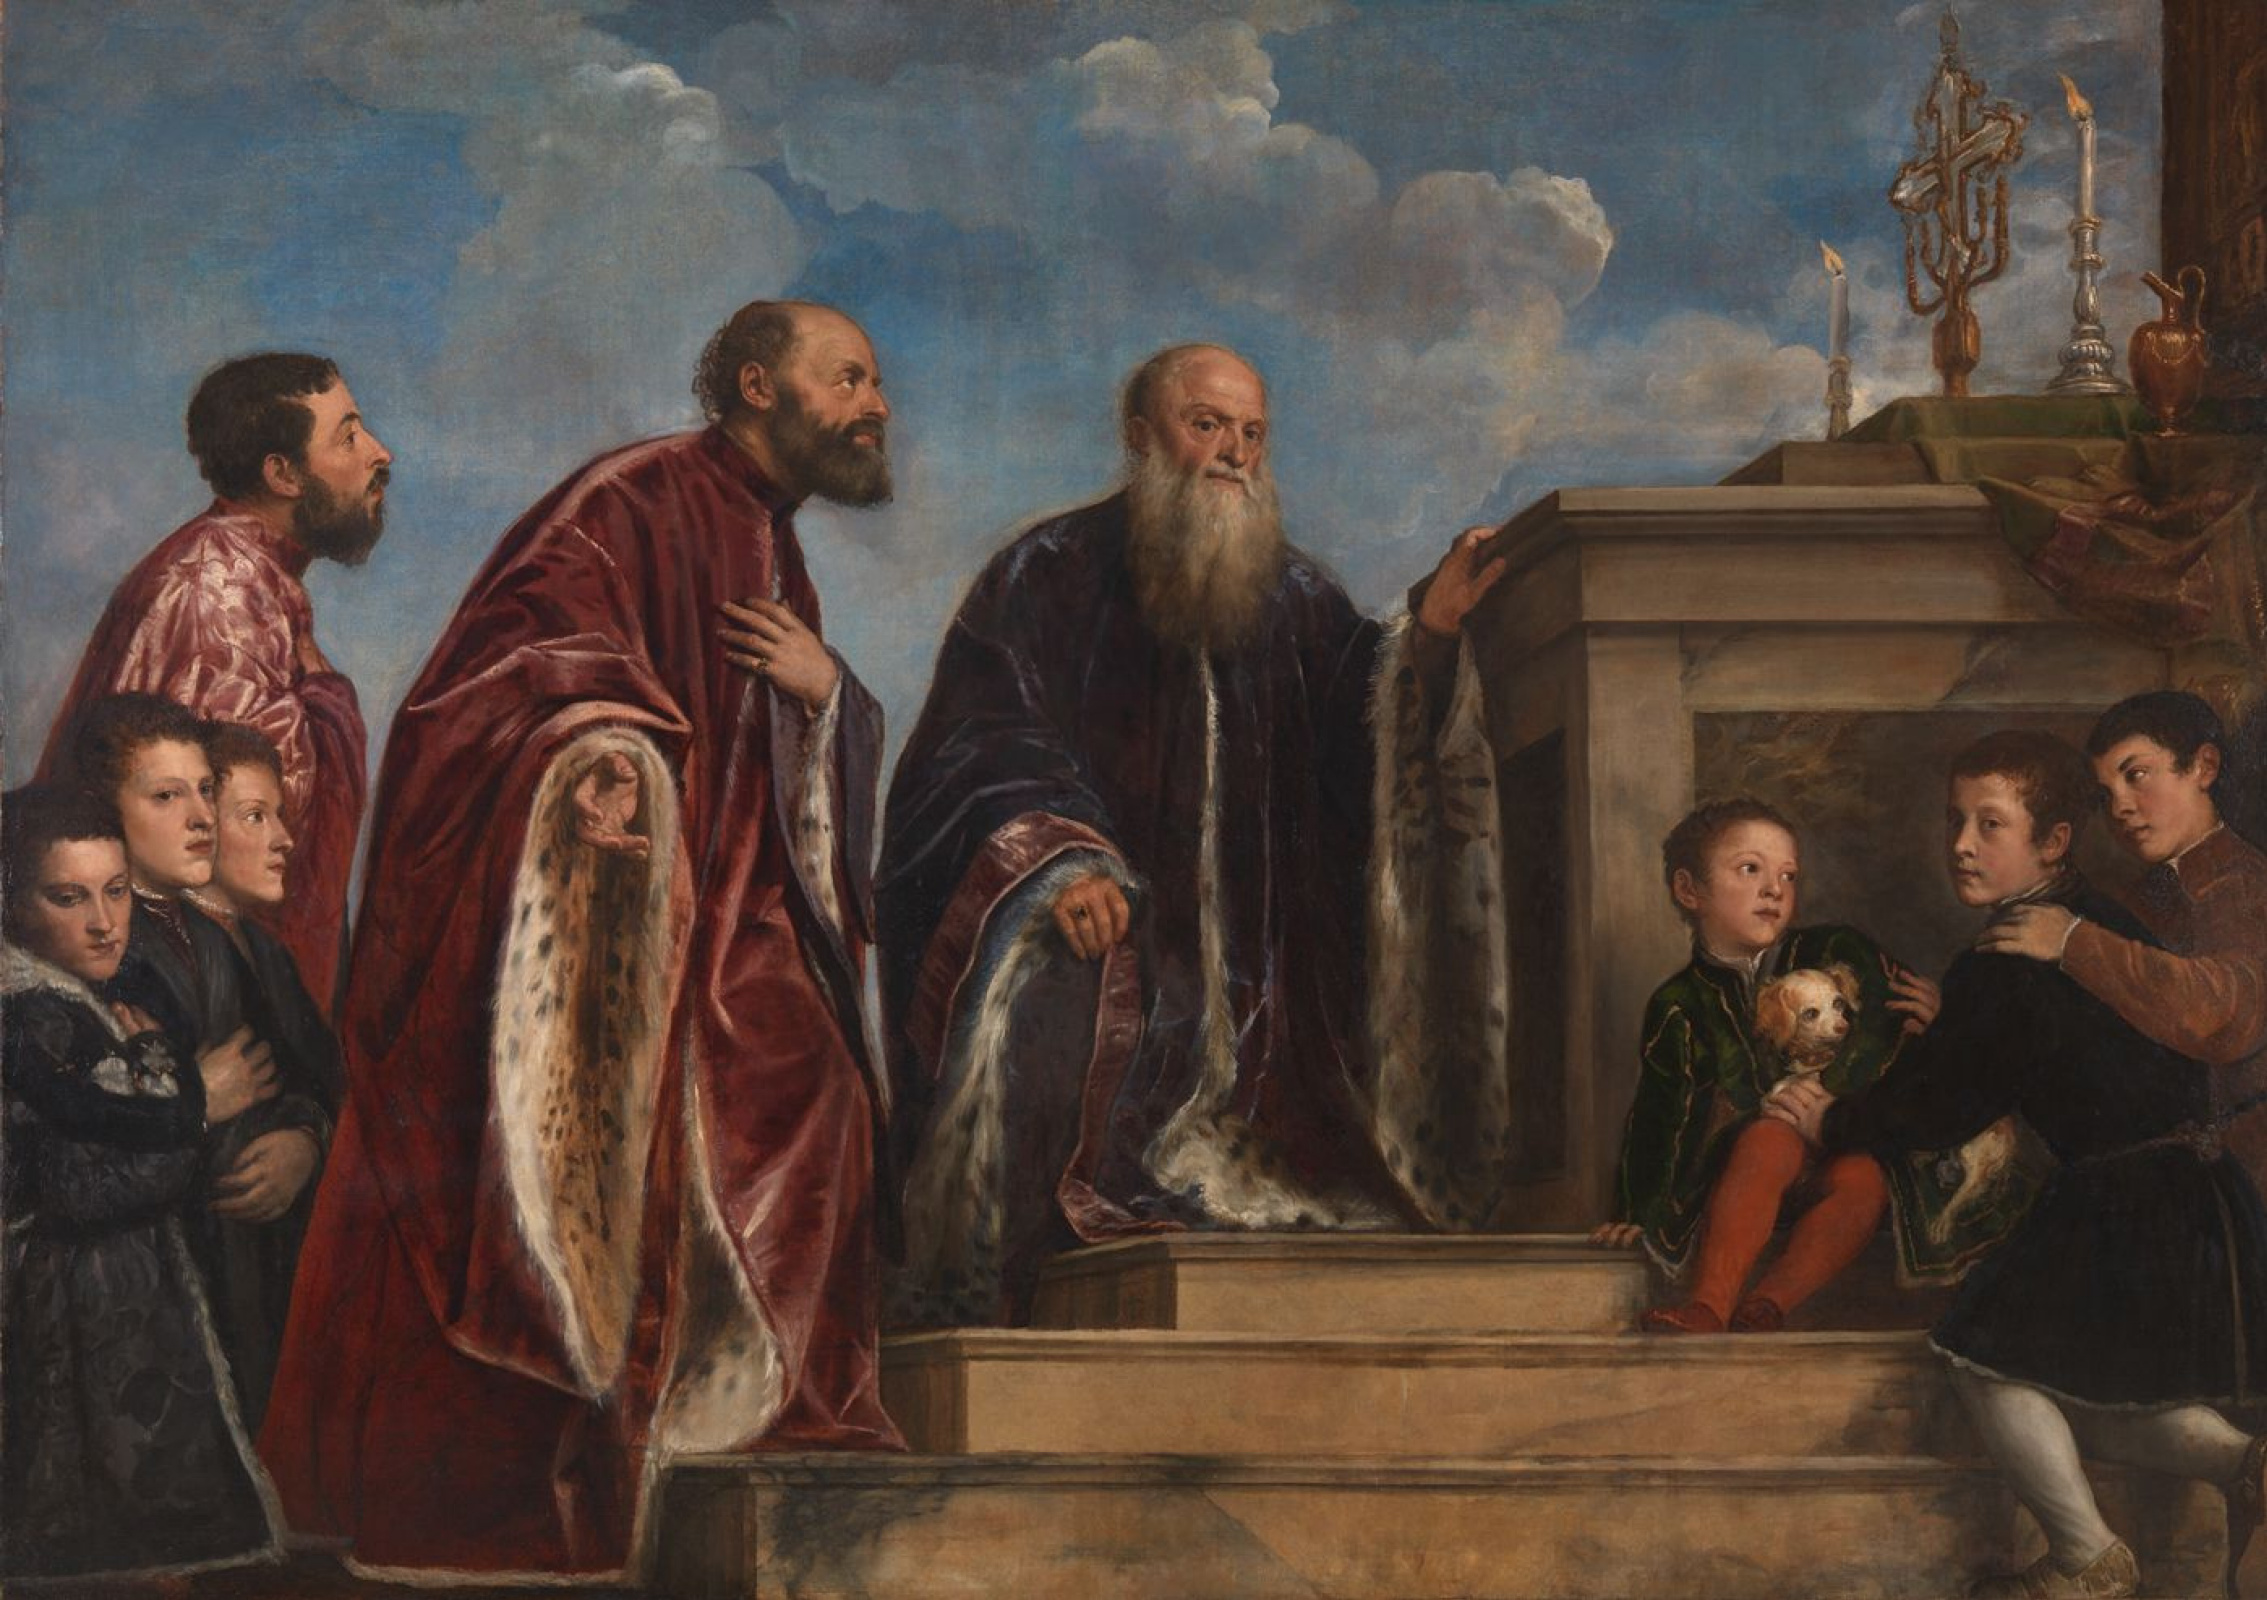 Titian Vecelli. The Vendramin family worships the remnants of the True cross